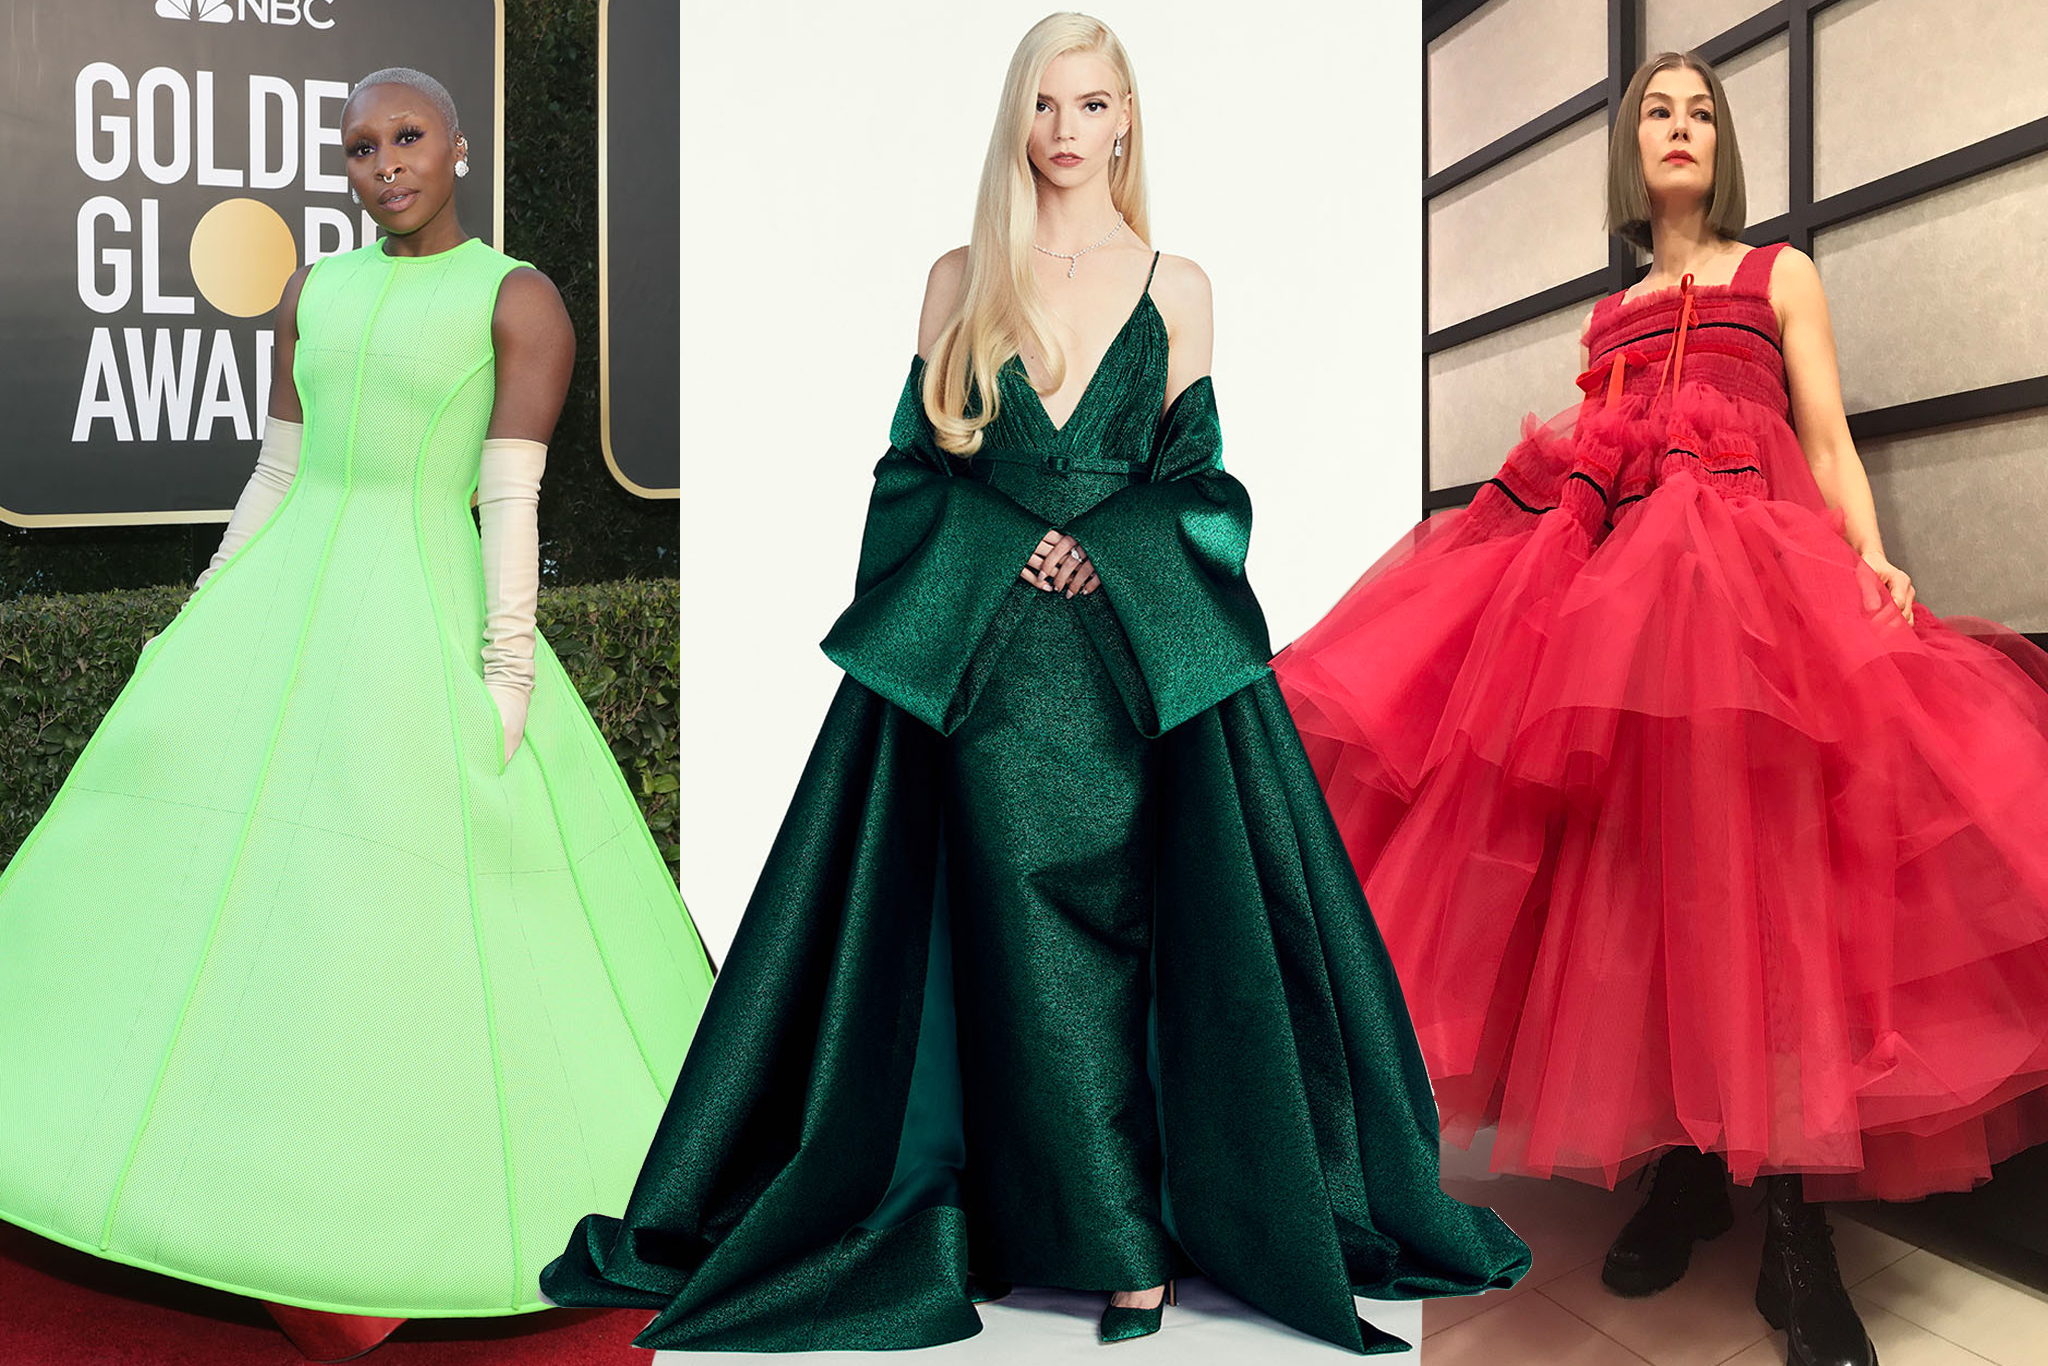 Golden Globes Best Dressed 2021